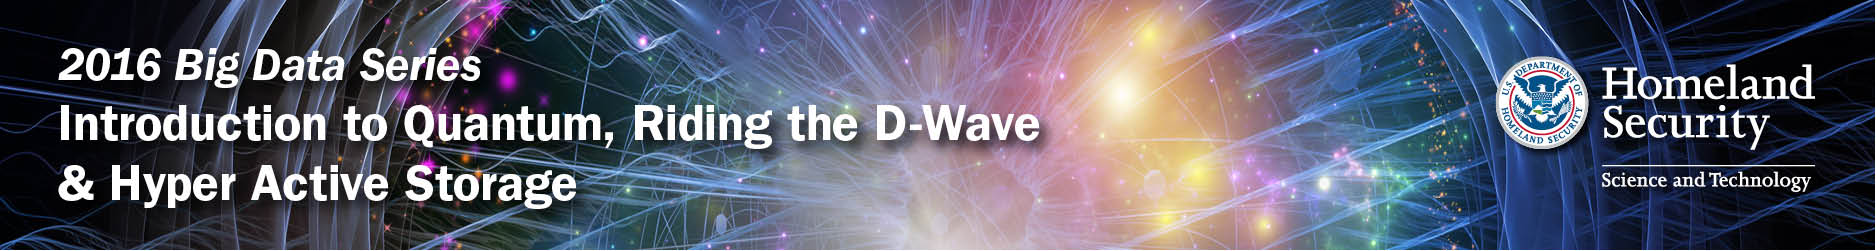 Department of Homeland Security<br/> Science & Technology Directorate<br/> Homeland Security Advanced Research Projects Agency<br/> 2016 Big Data Series: Introduction to Quantum Computing,<br/> Riding the D-Wave & Hyper Active Storage